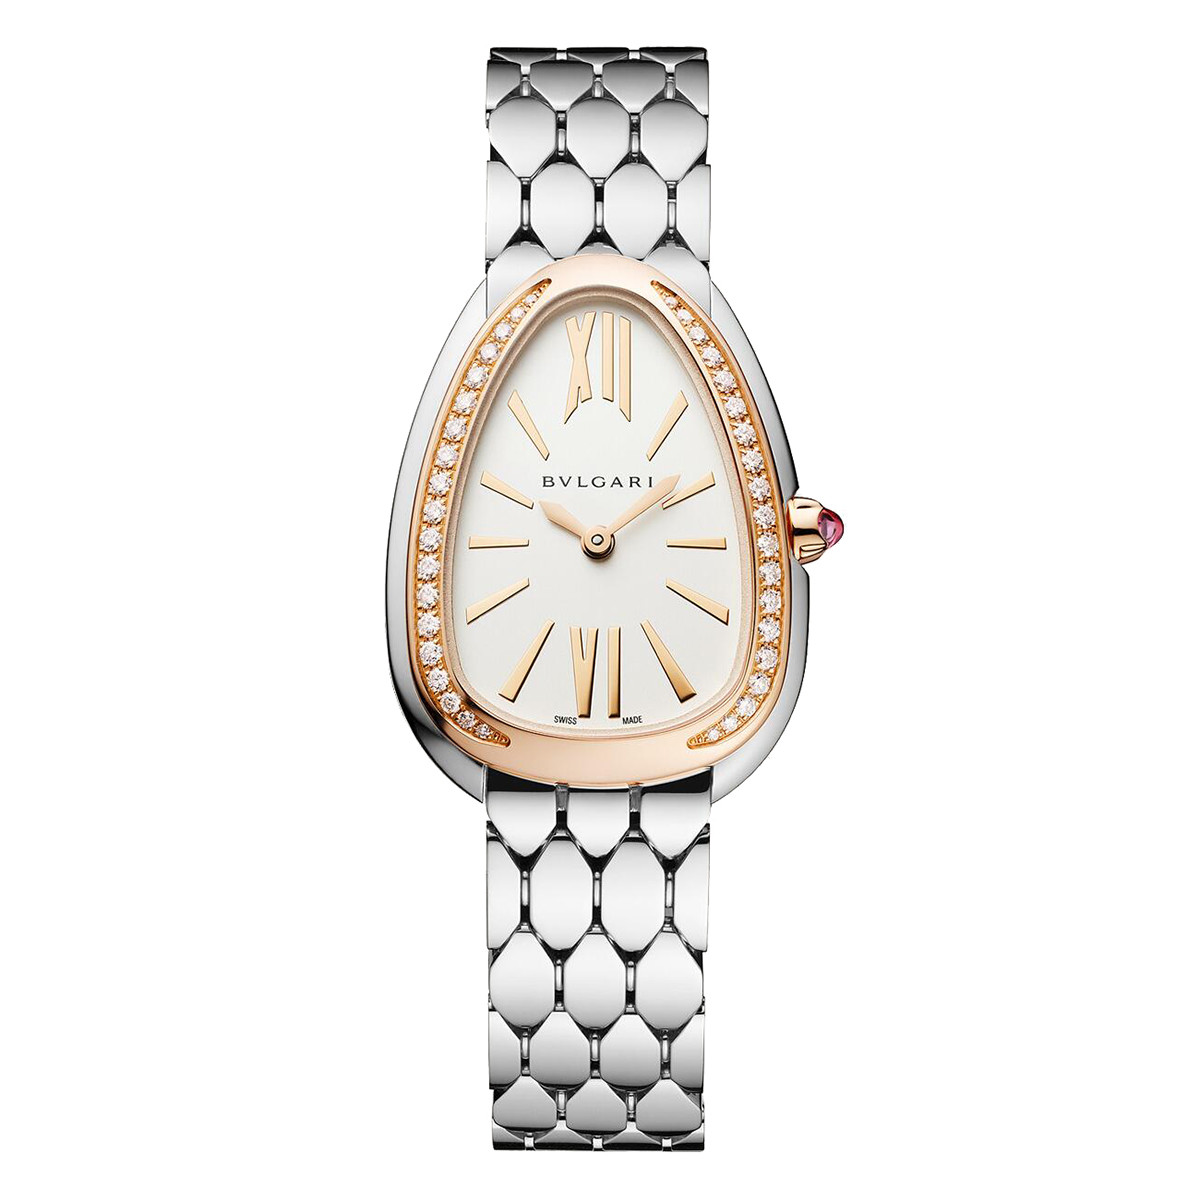 Serpenti Seduttori Steel, Rose Gold & Diamonds (103143)